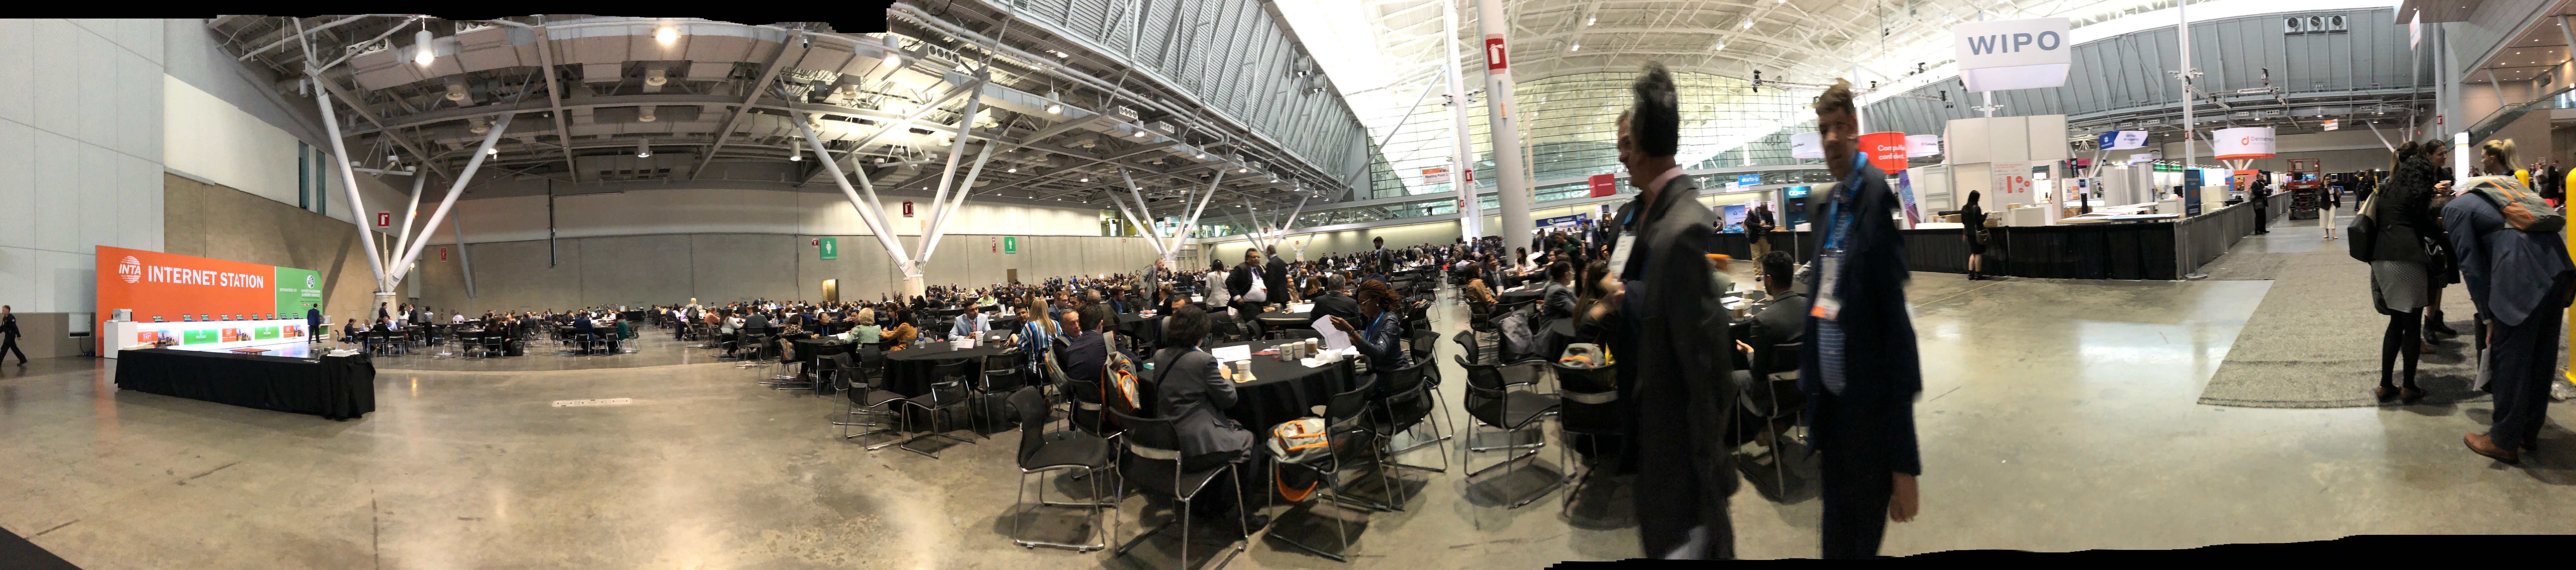 Hundreds of simultanuous meetings in the Expo Hall @ INTA 2019, Boston MA. Image: Claire Kowarsky